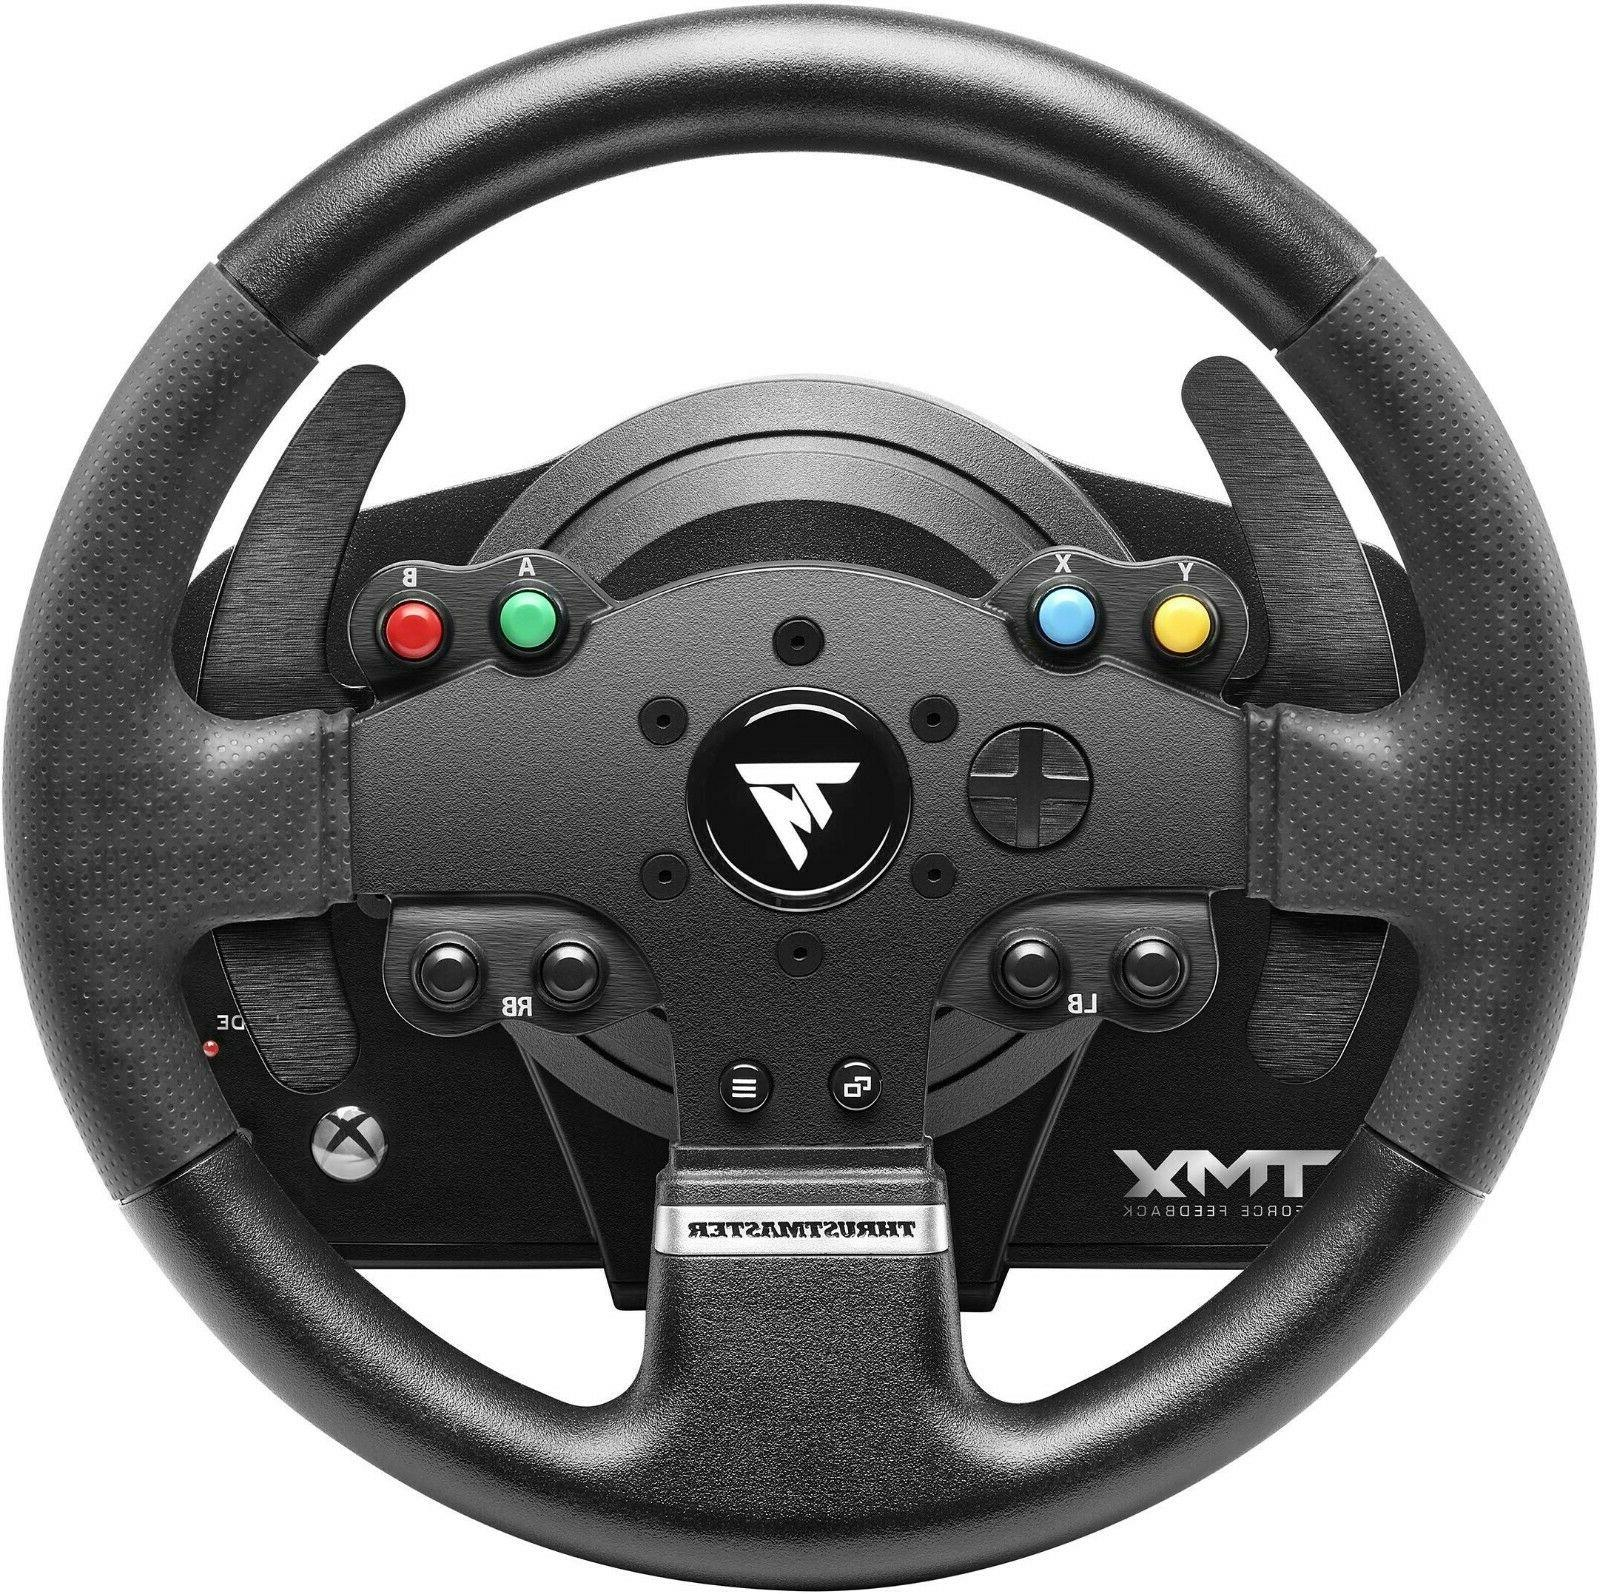 Thrustmaster Force racing wheel One and